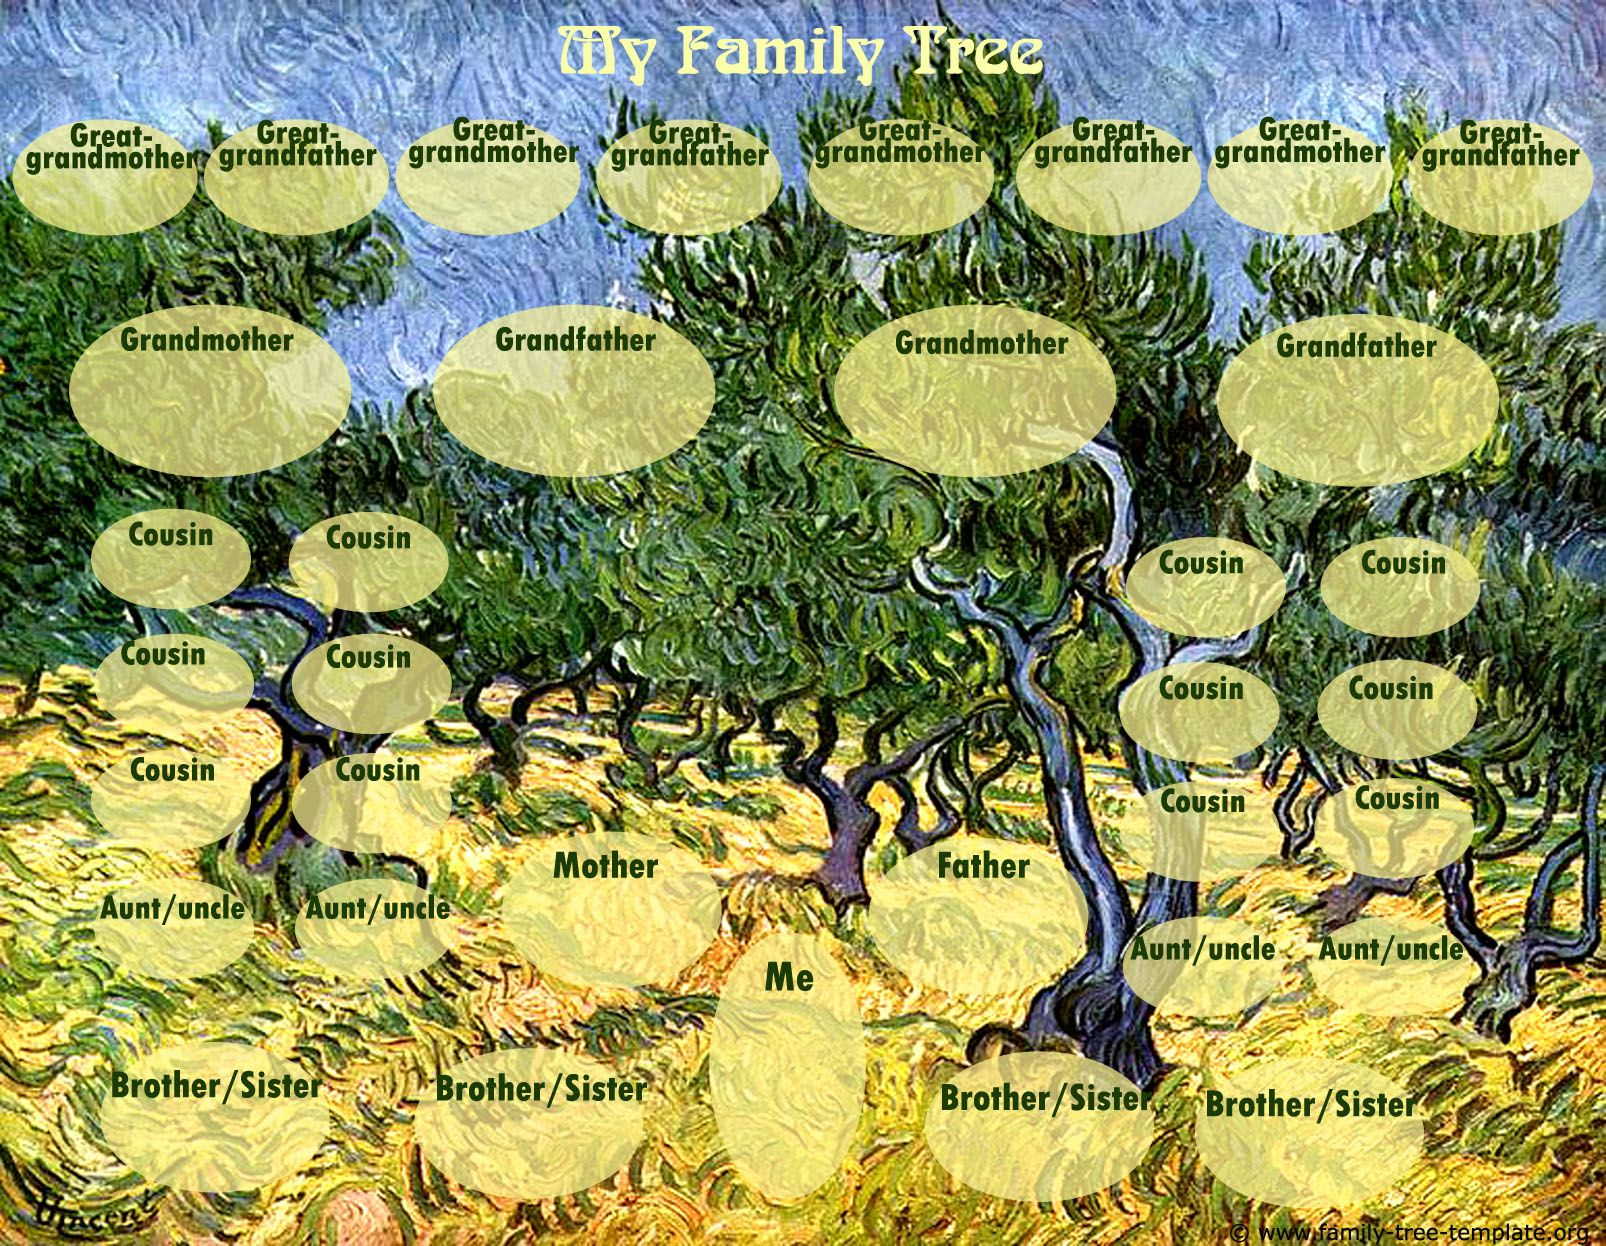 Van Gogh Family Tree With Space For Siblings Cousins Aunts And